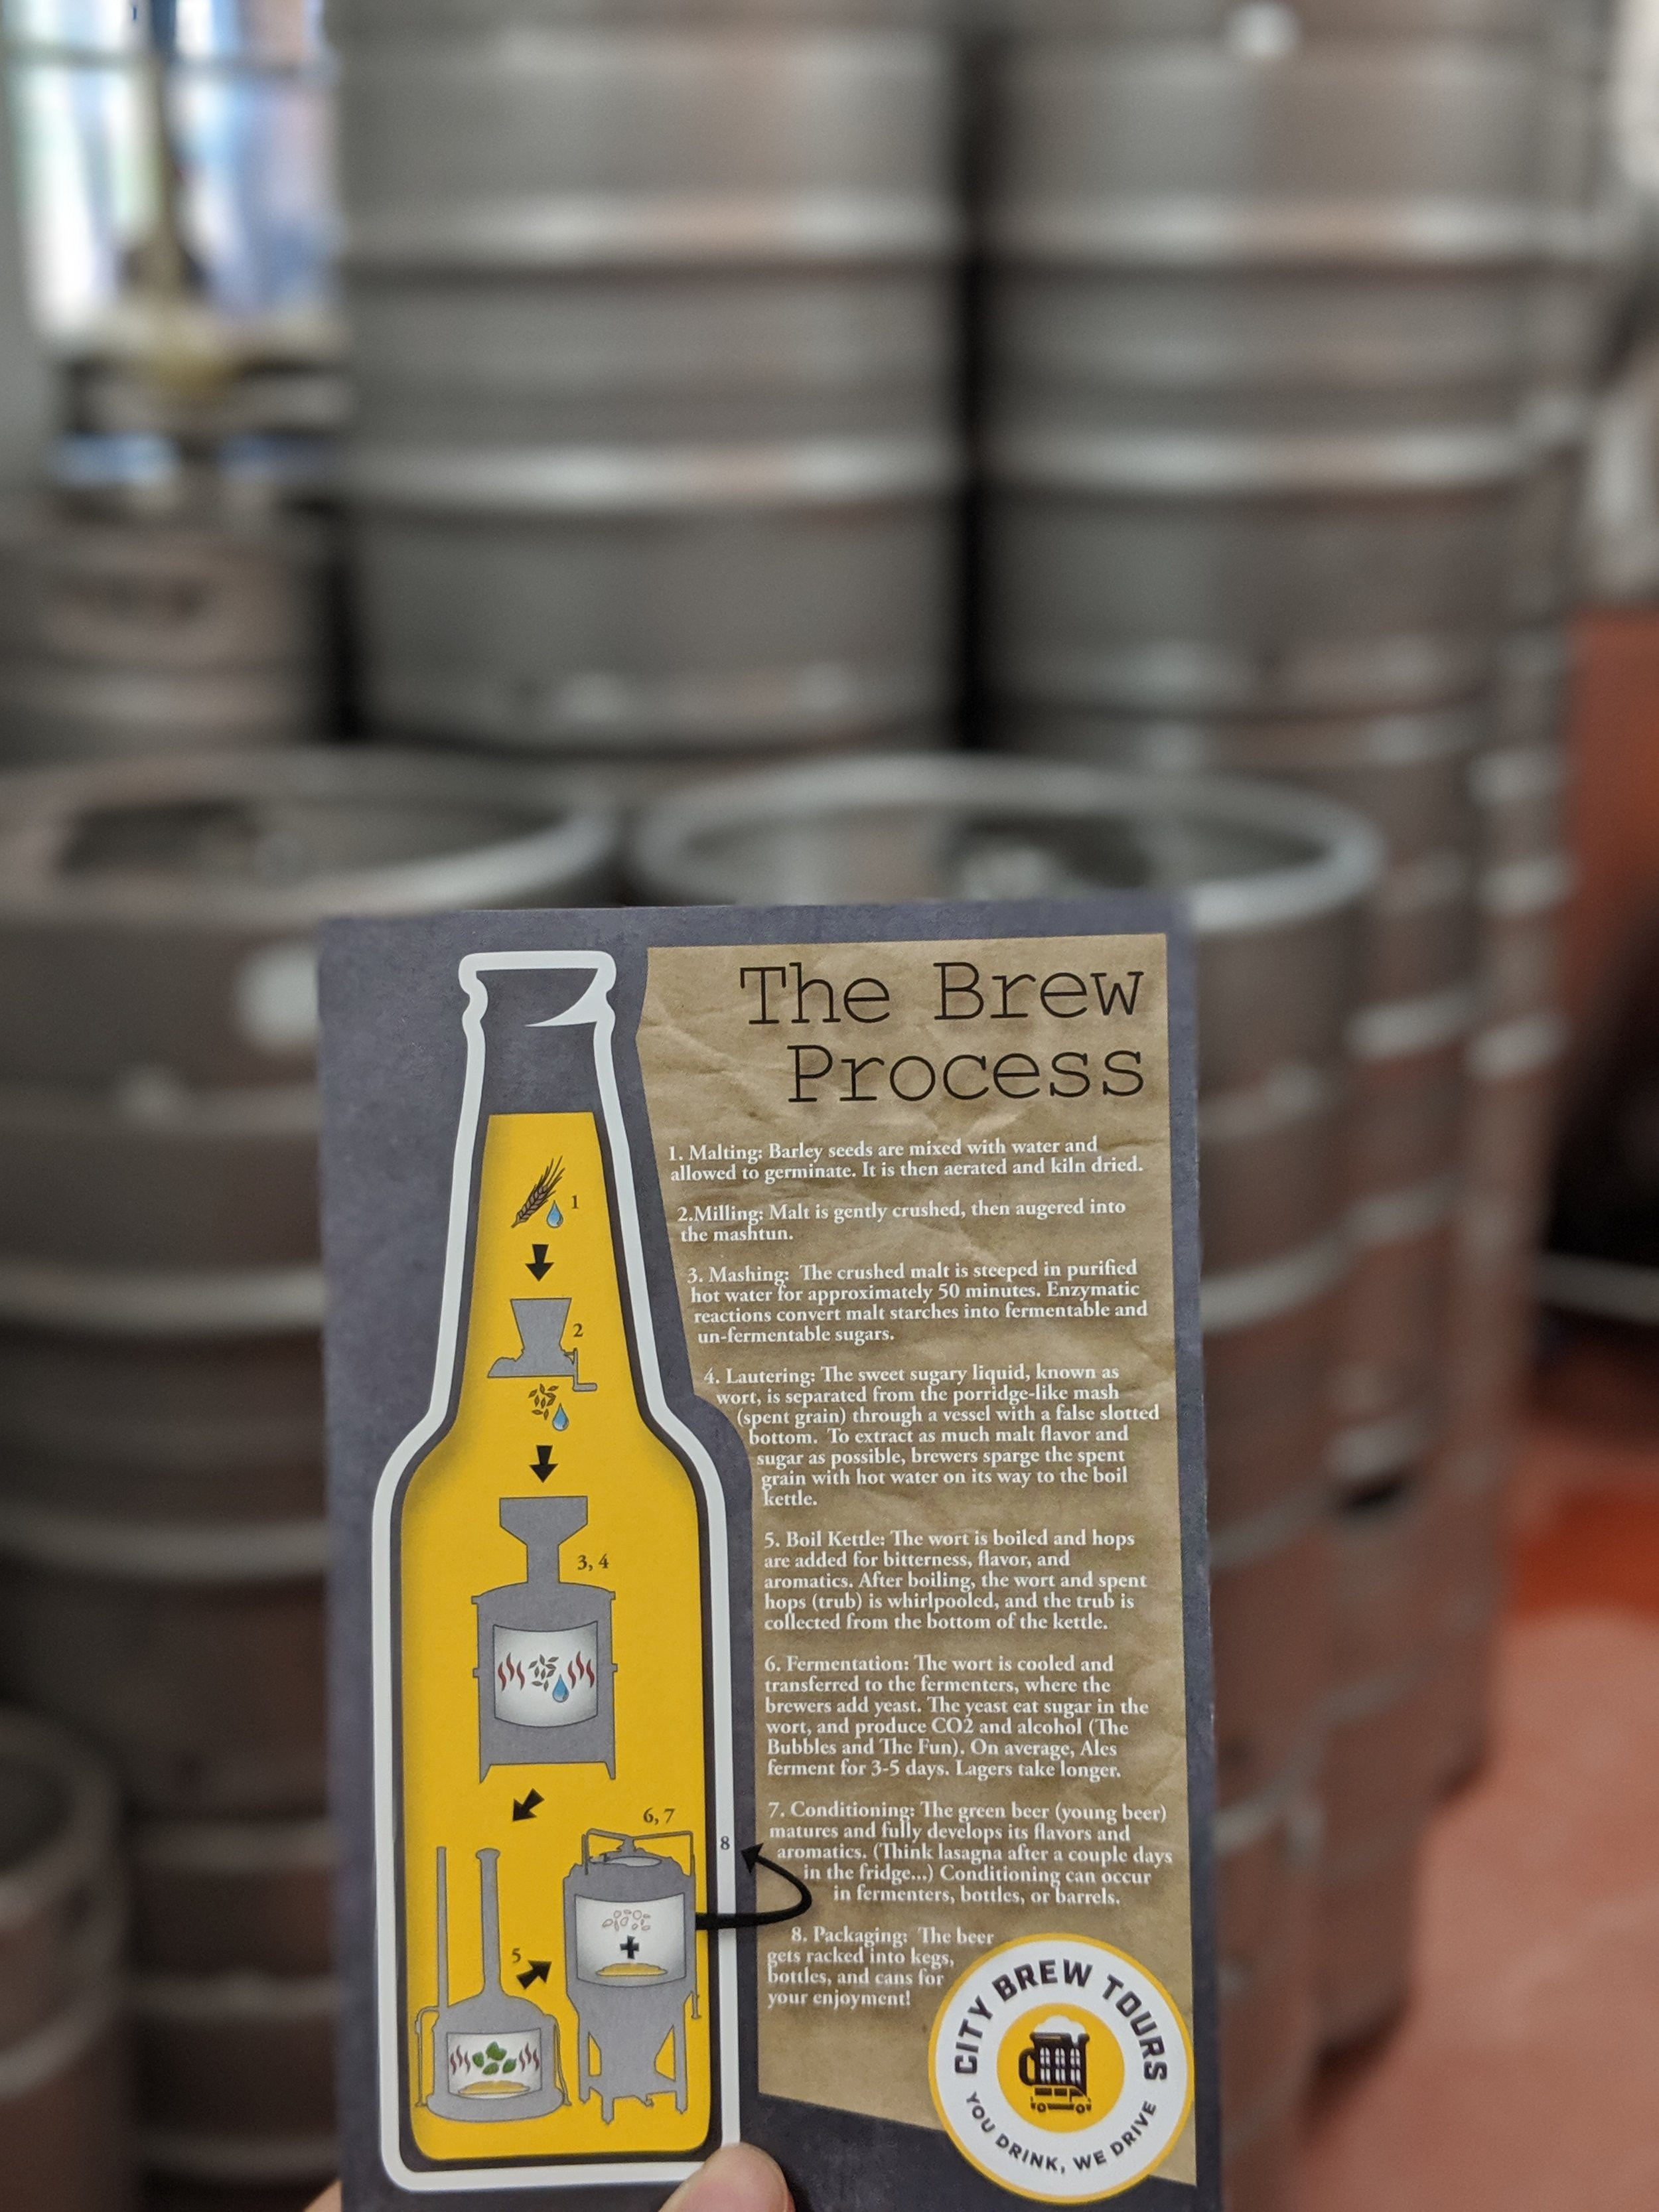 City brew tours' beer making process A guide of Montreal breweries